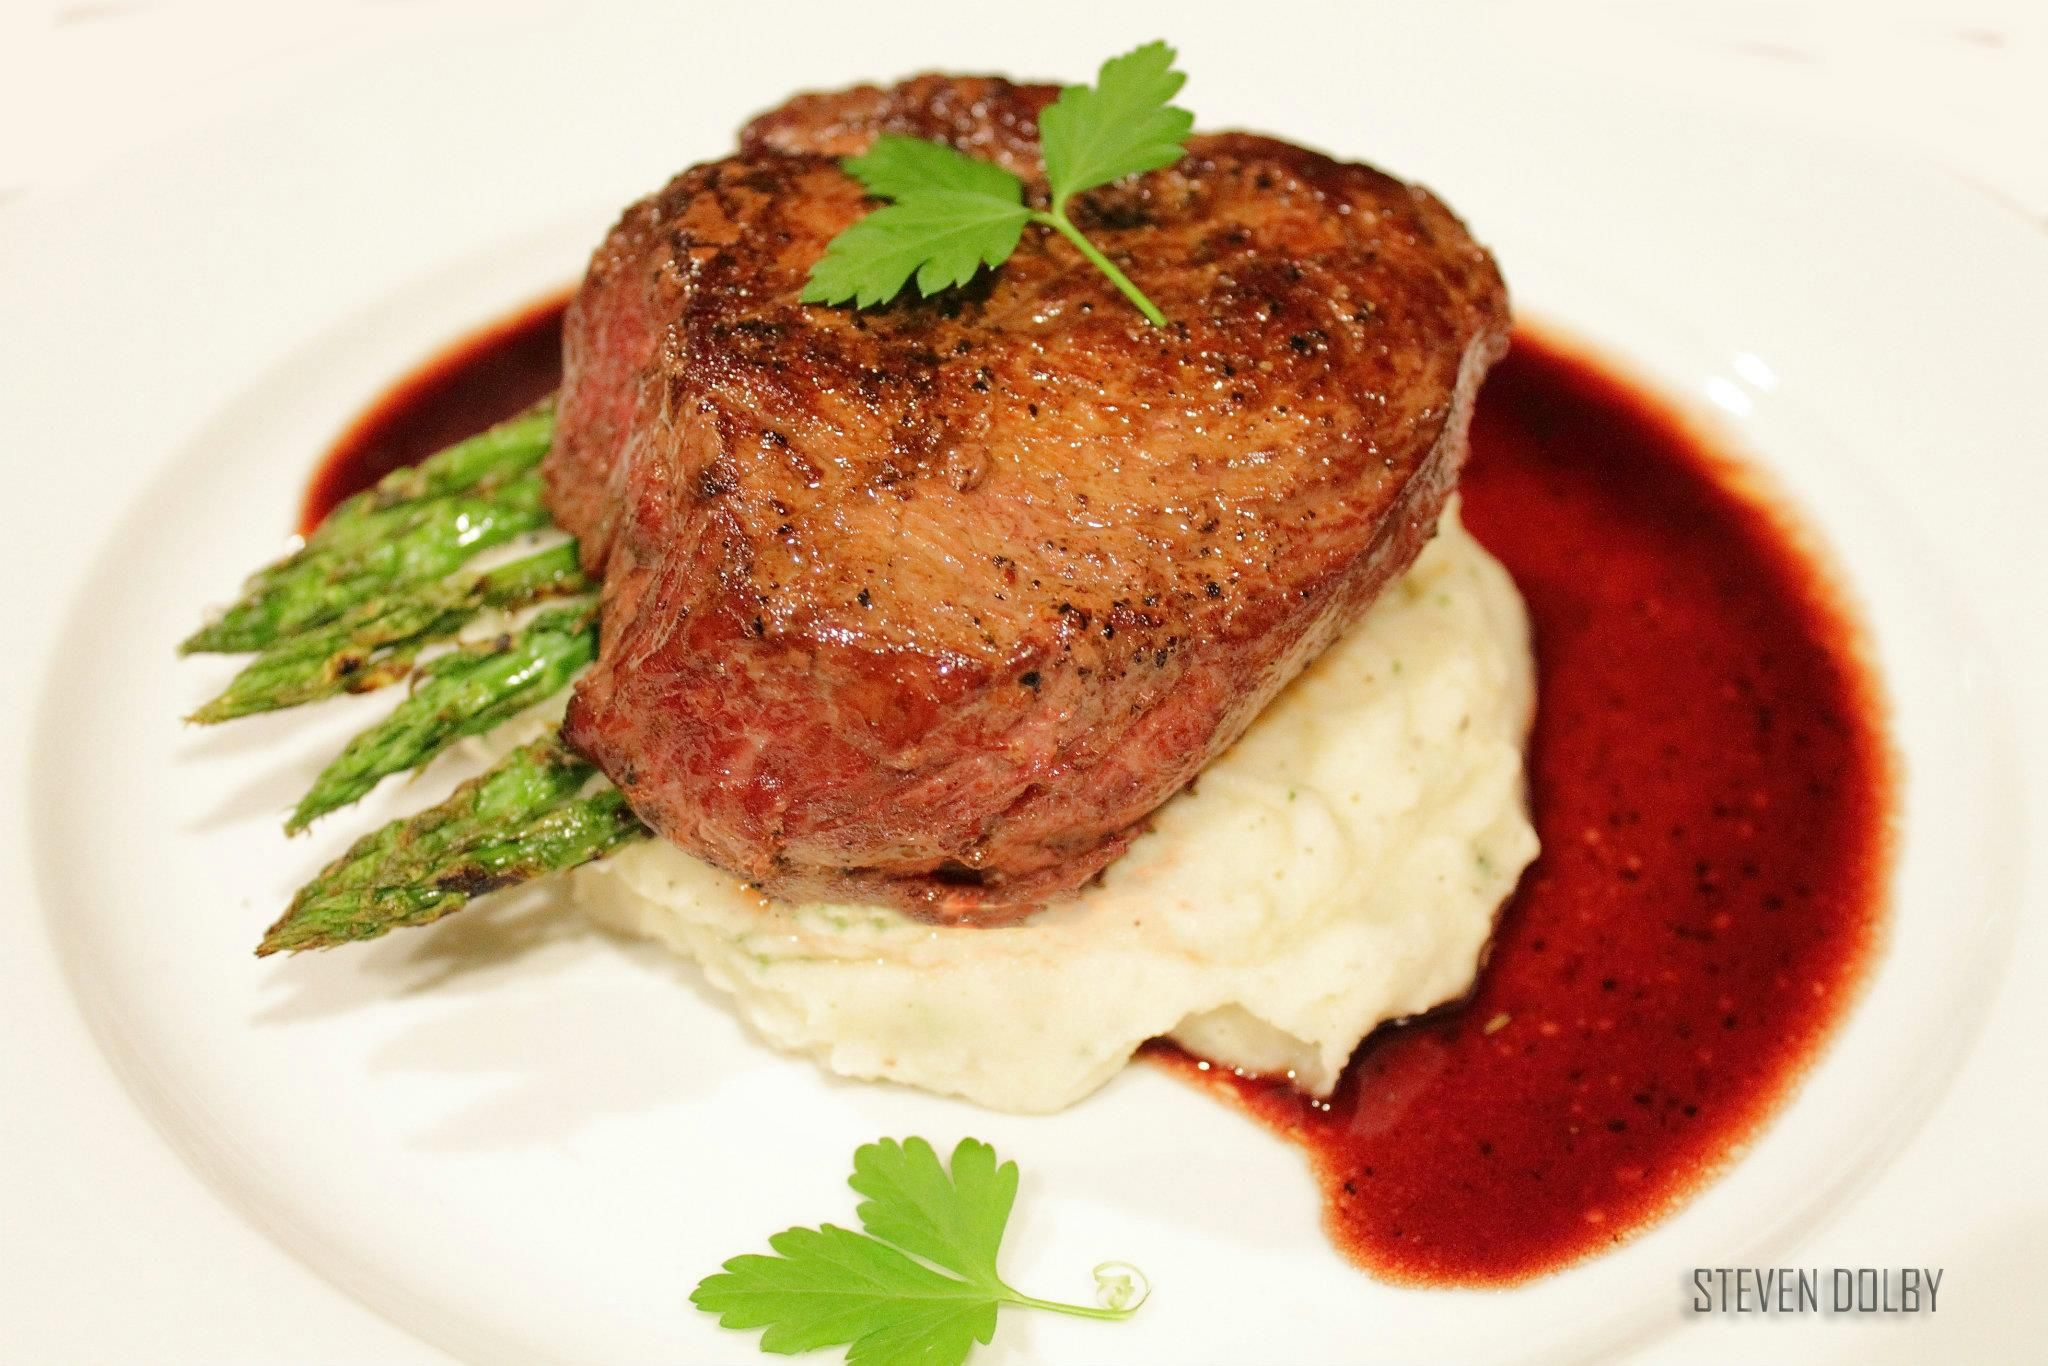 Filet Mignon With Red Wine Reduction Sauce By Steven Dolby With Images Red Wine Reduction Fillet Steak Fillet Steak Recipes